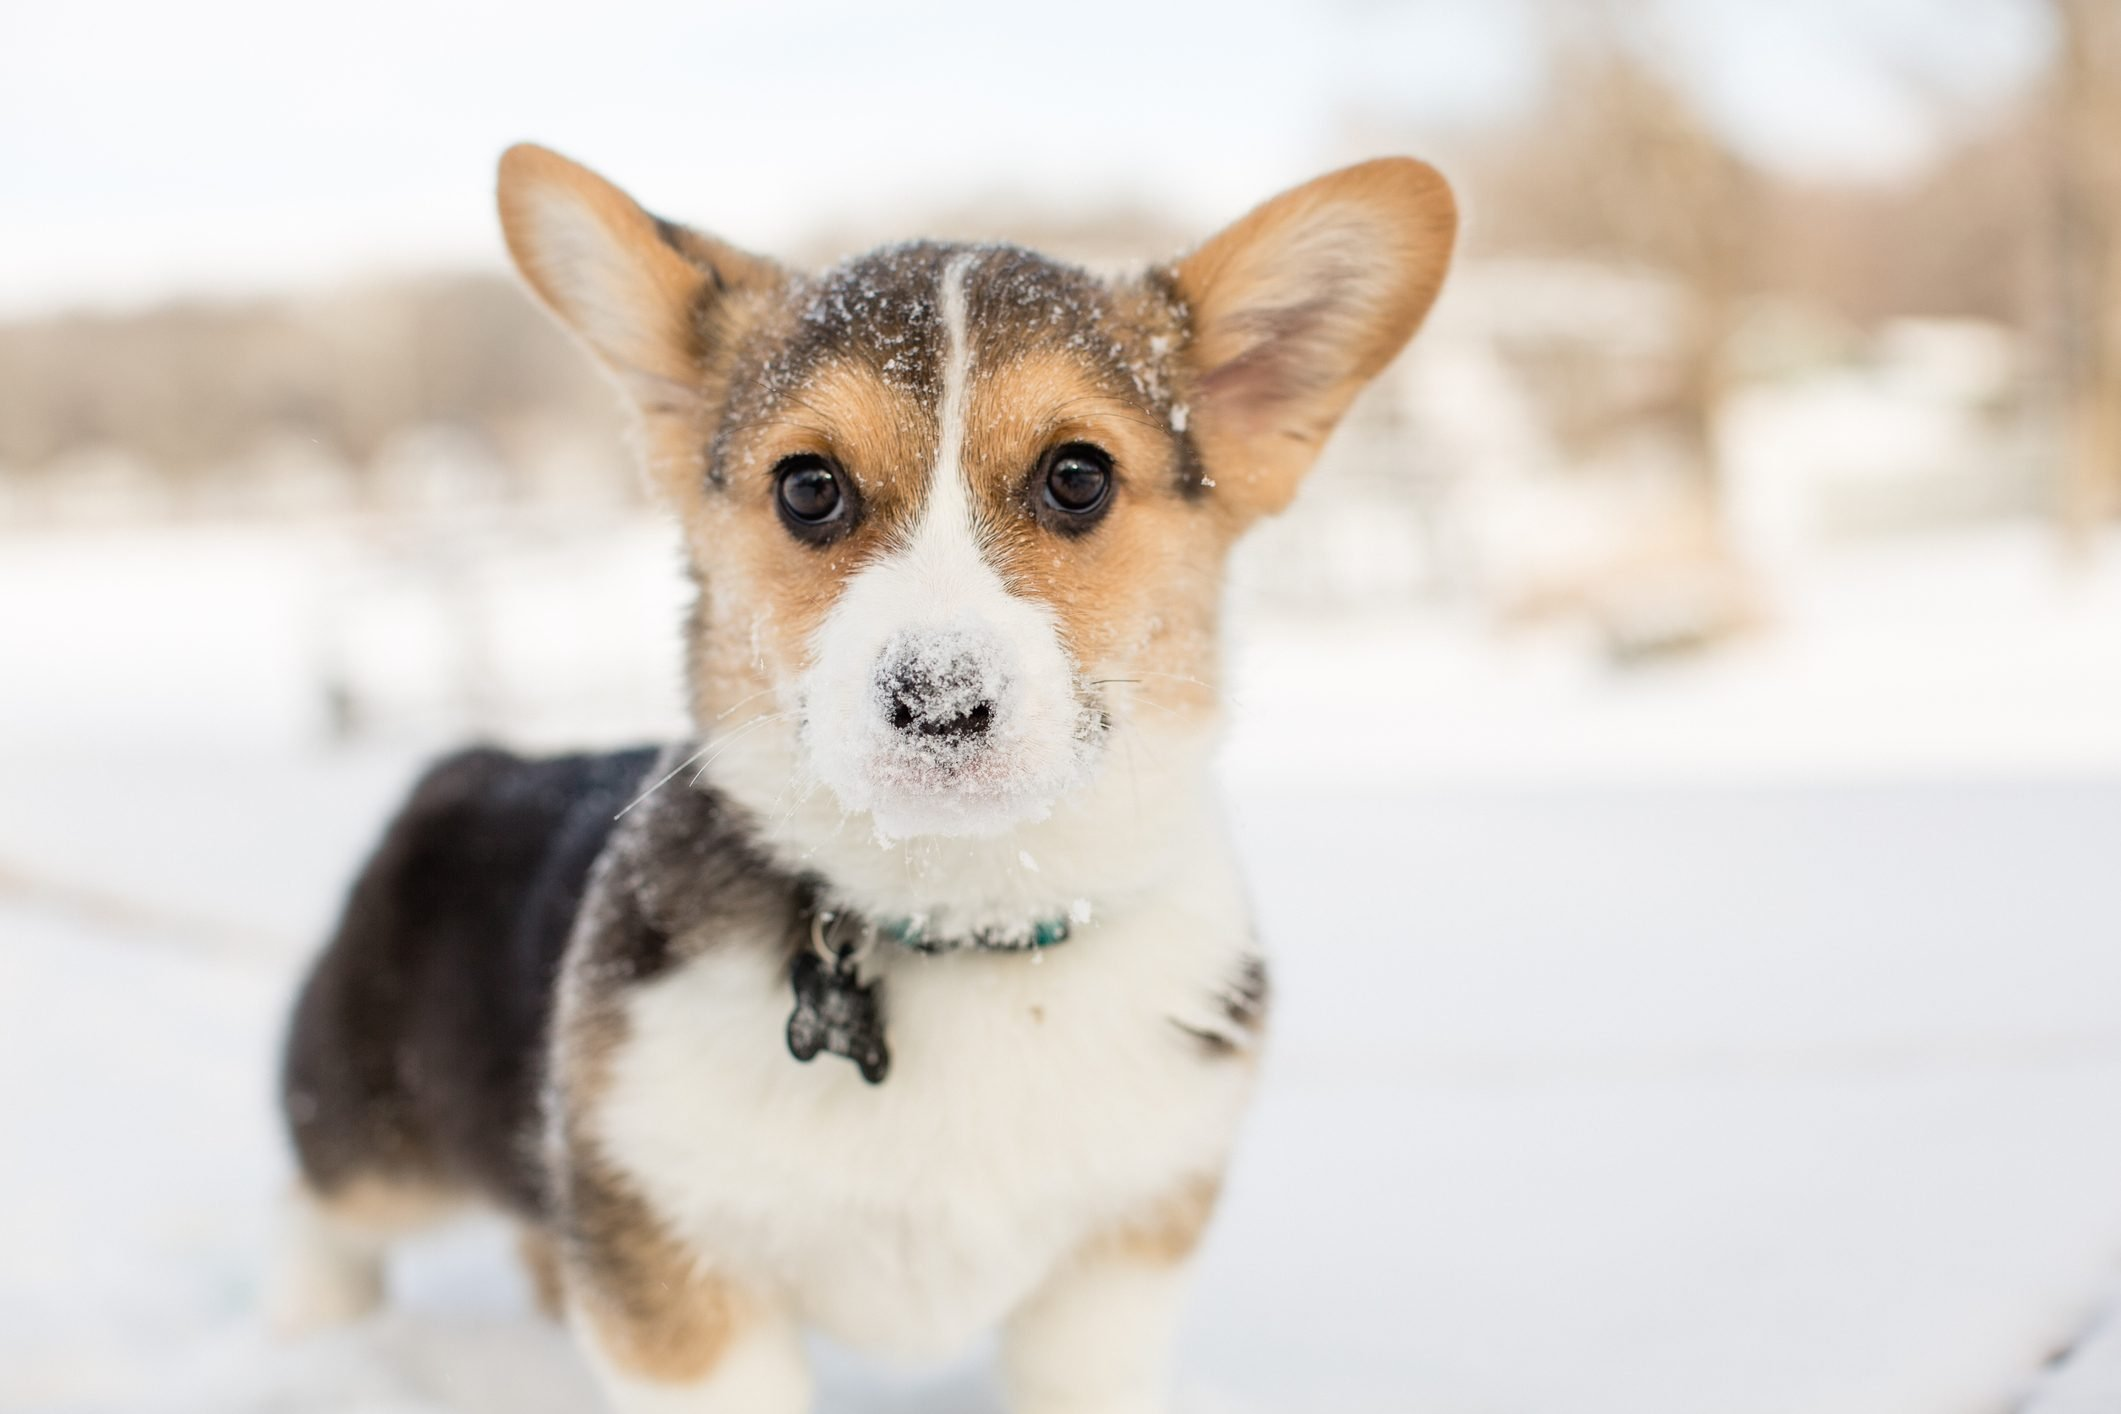 Cute tricolor corgi puppy outdoors in winter snow with snow on nose